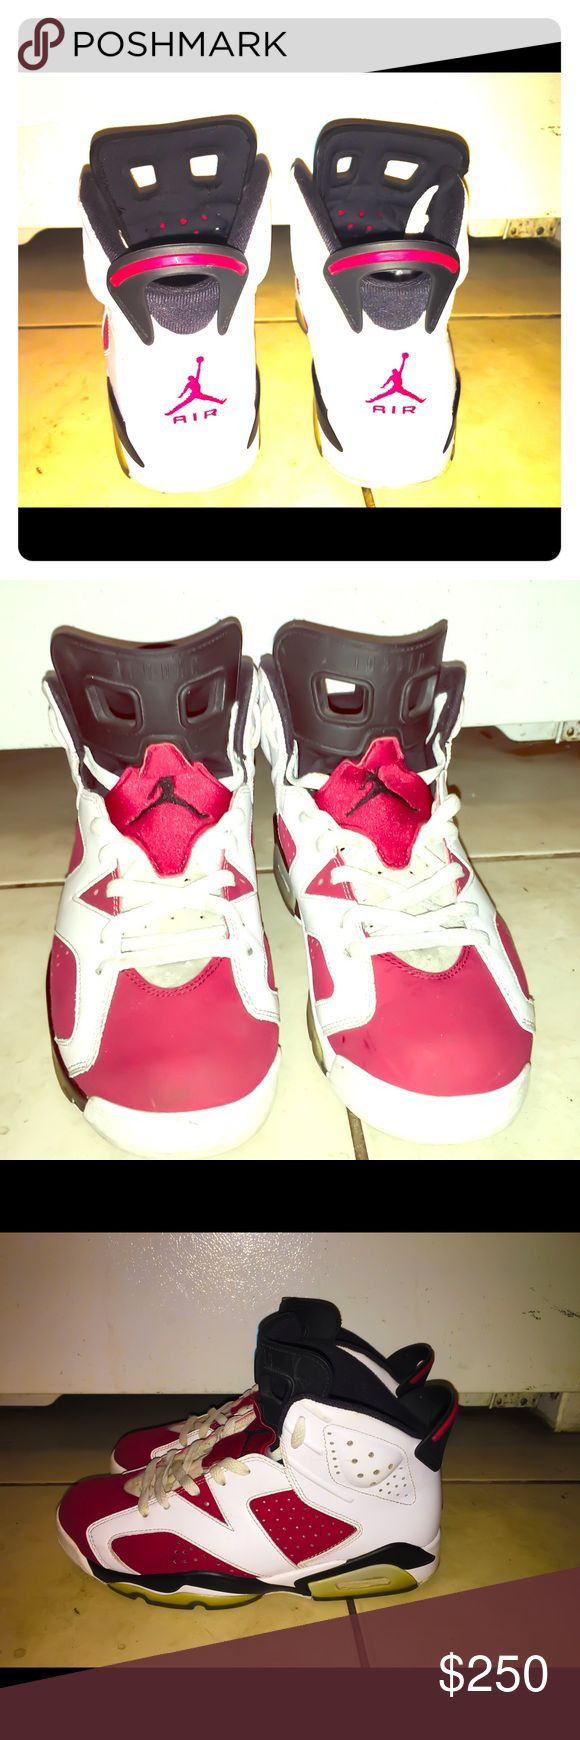 Jordan Retro 6 Carmines (Sz. 9) Jordan Retro 6 Carmine, Size 9. External and Internal in excellent condition. Laces Need A Cleaning. Listing at $250.00. Price Negotiable. Nike Shoes Athletic Shoes